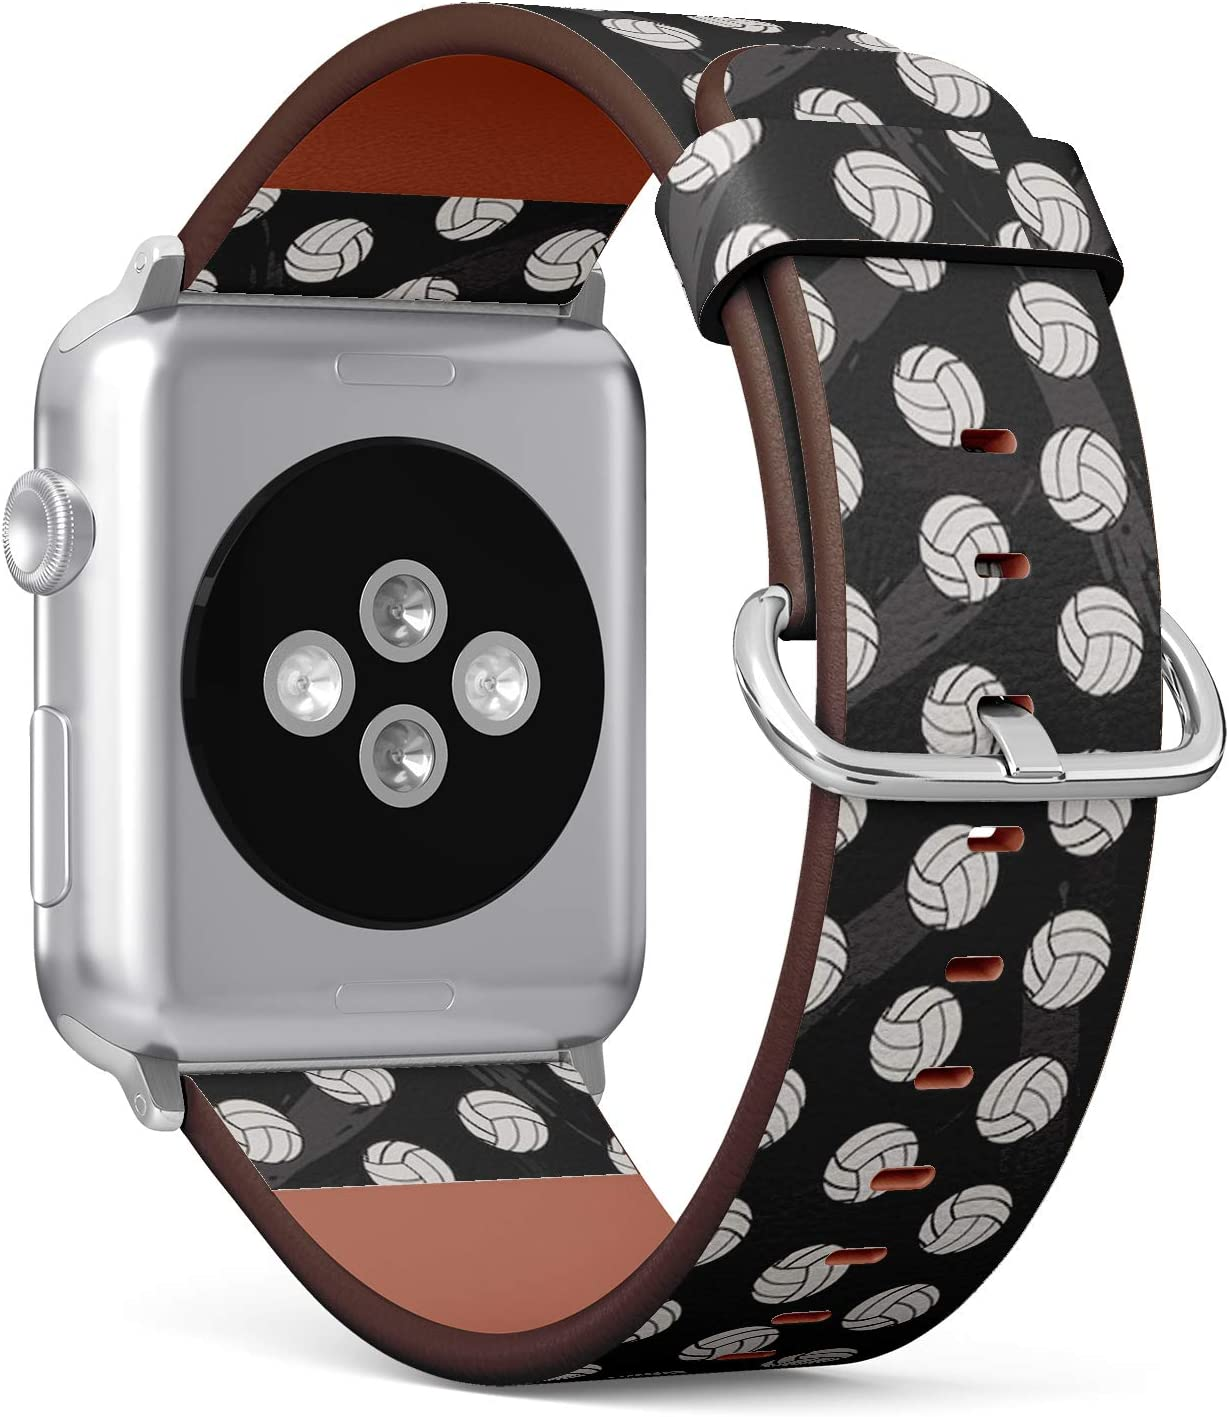 Compatible with Apple Watch (Small Version) 38 / 40mm Leather Wristband Bracelet with Stainless Steel Clasp and Adapters -Volleyball Boy Sports